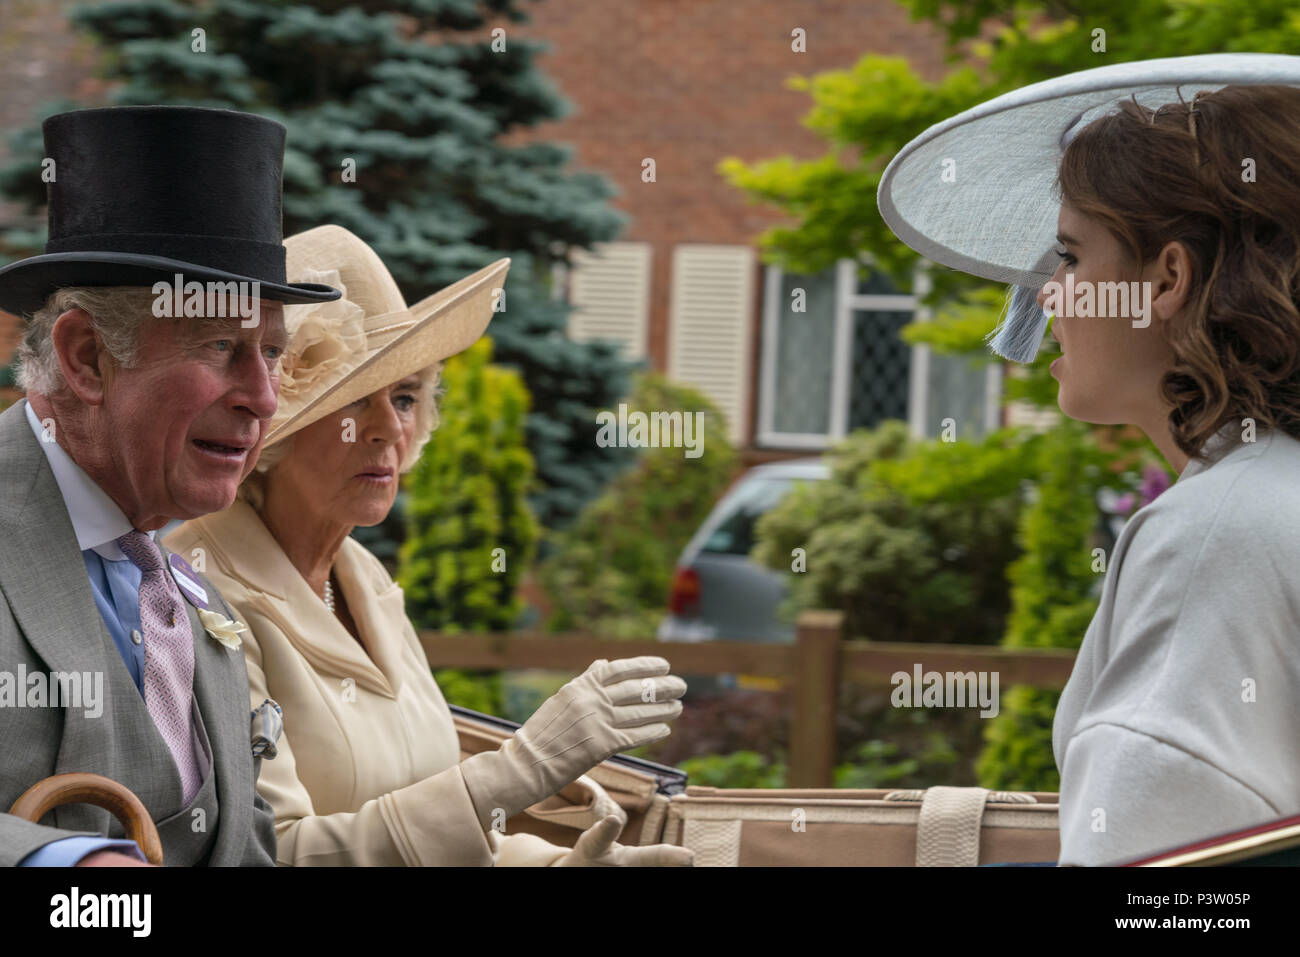 Royal Ascot, Berkshire, UK. 19th Jun, 2018. HRH Prince Charles with Camillia and Eugenie in the Royal Ascot Carriage Procession Credit: Chris Miller/Alamy Live News - Stock Image